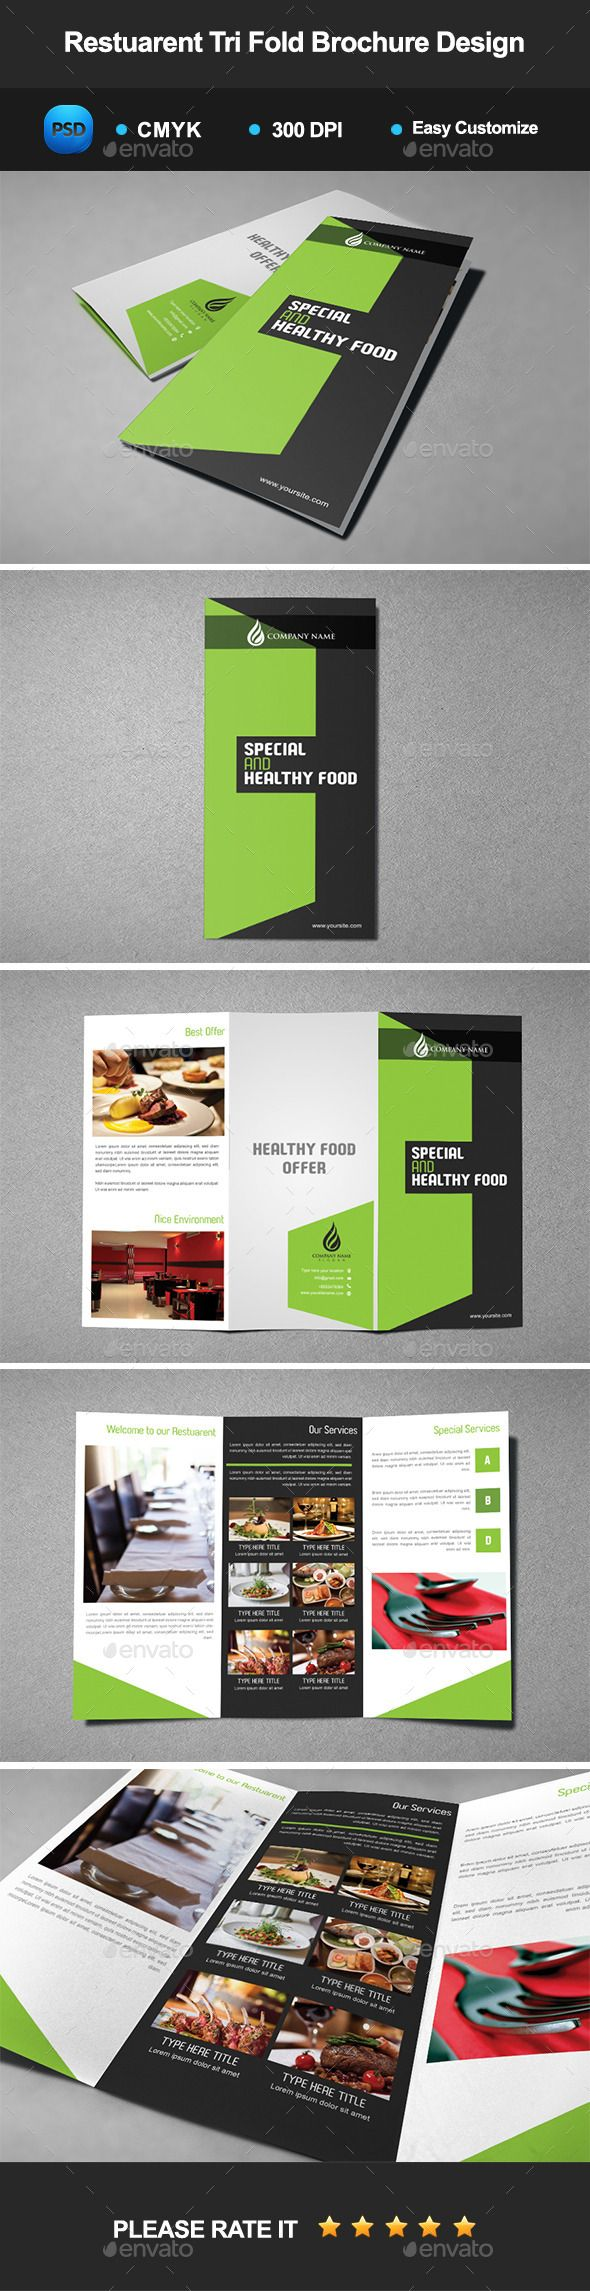 Creative Modern Corporate Brochure Design: Restaurant Tri Fold Brochure Design